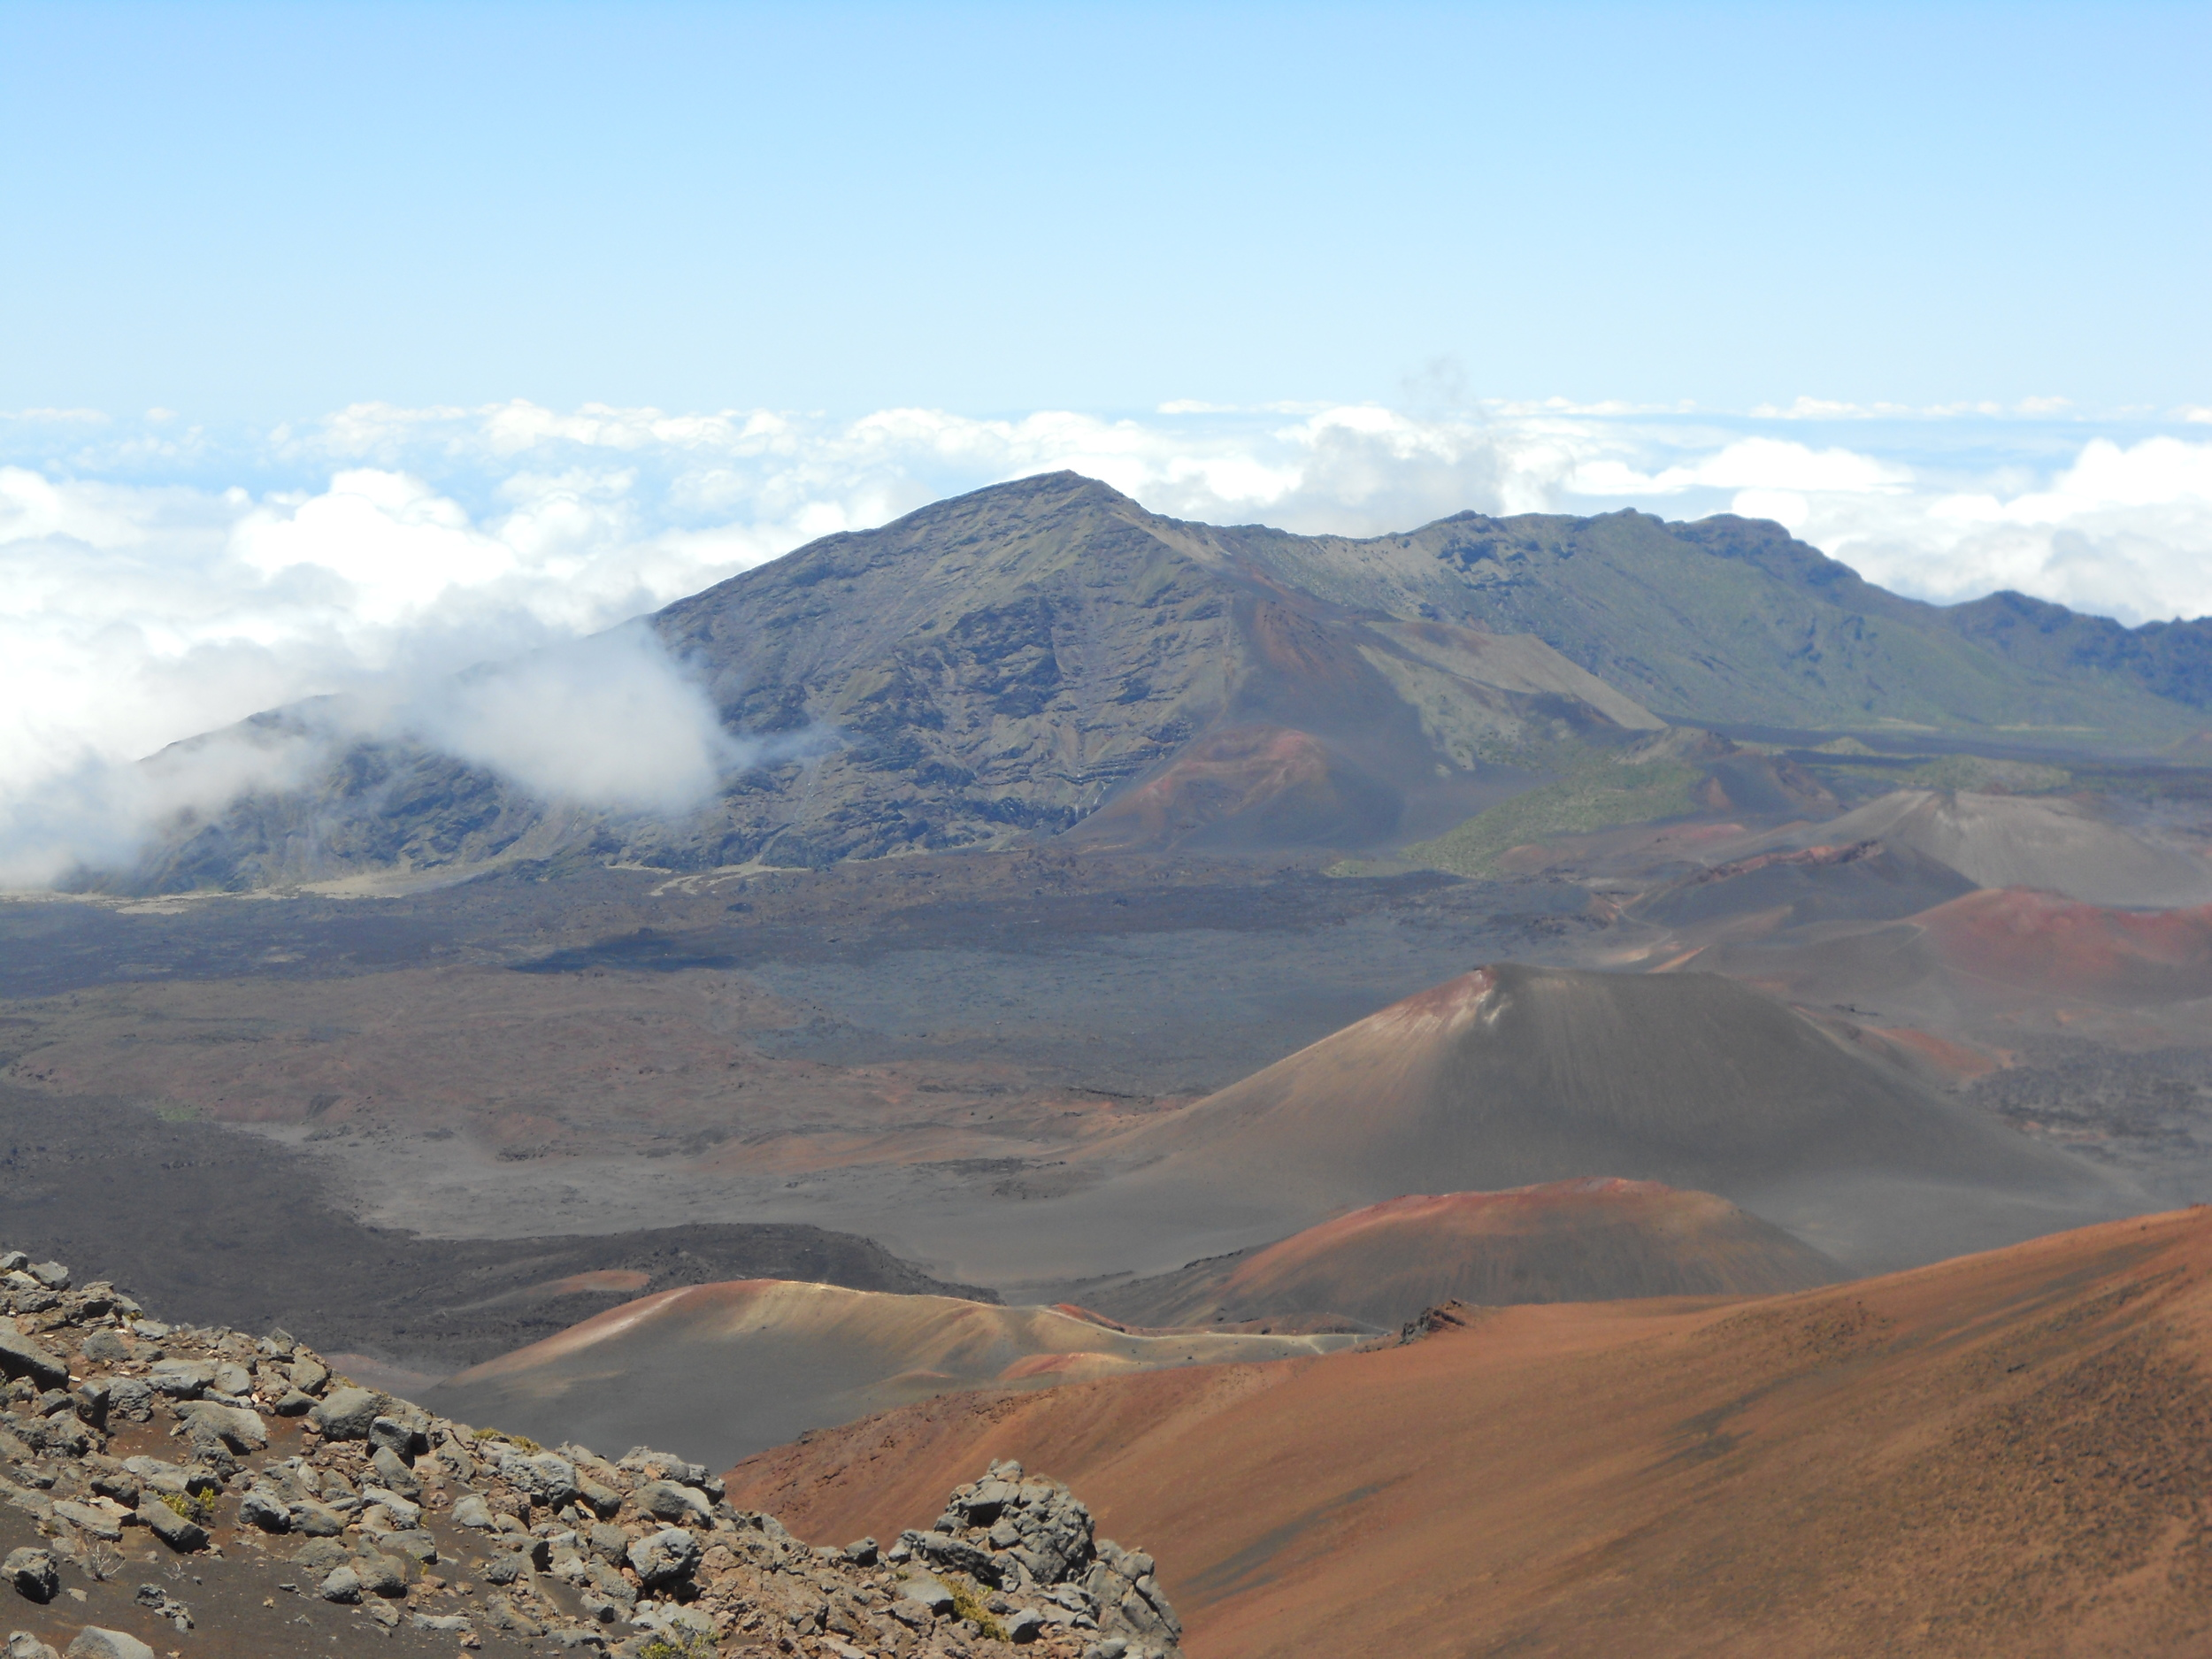 This is Haleakala, in Maui. We're not in Maui, but I don't know what where we're going looks like yet, so this is what you get: one of my favorite places on Earth.